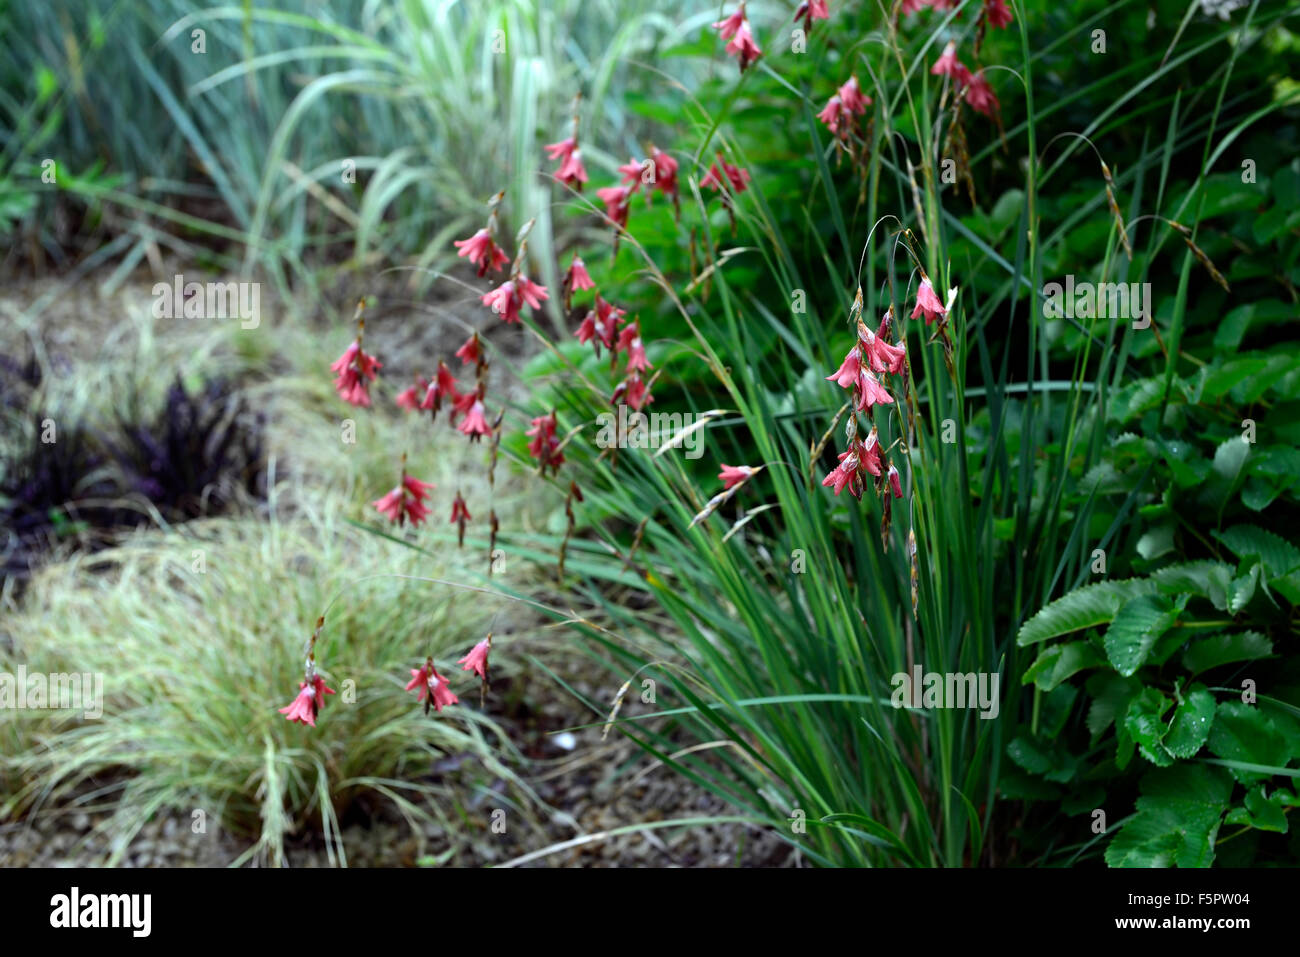 Dierama pulcherrimum red flowers flower perennials cascading arching dierama pulcherrimum red flowers flower perennials cascading arching dangly dangling hanging bell angels fishing rods rm floral mightylinksfo